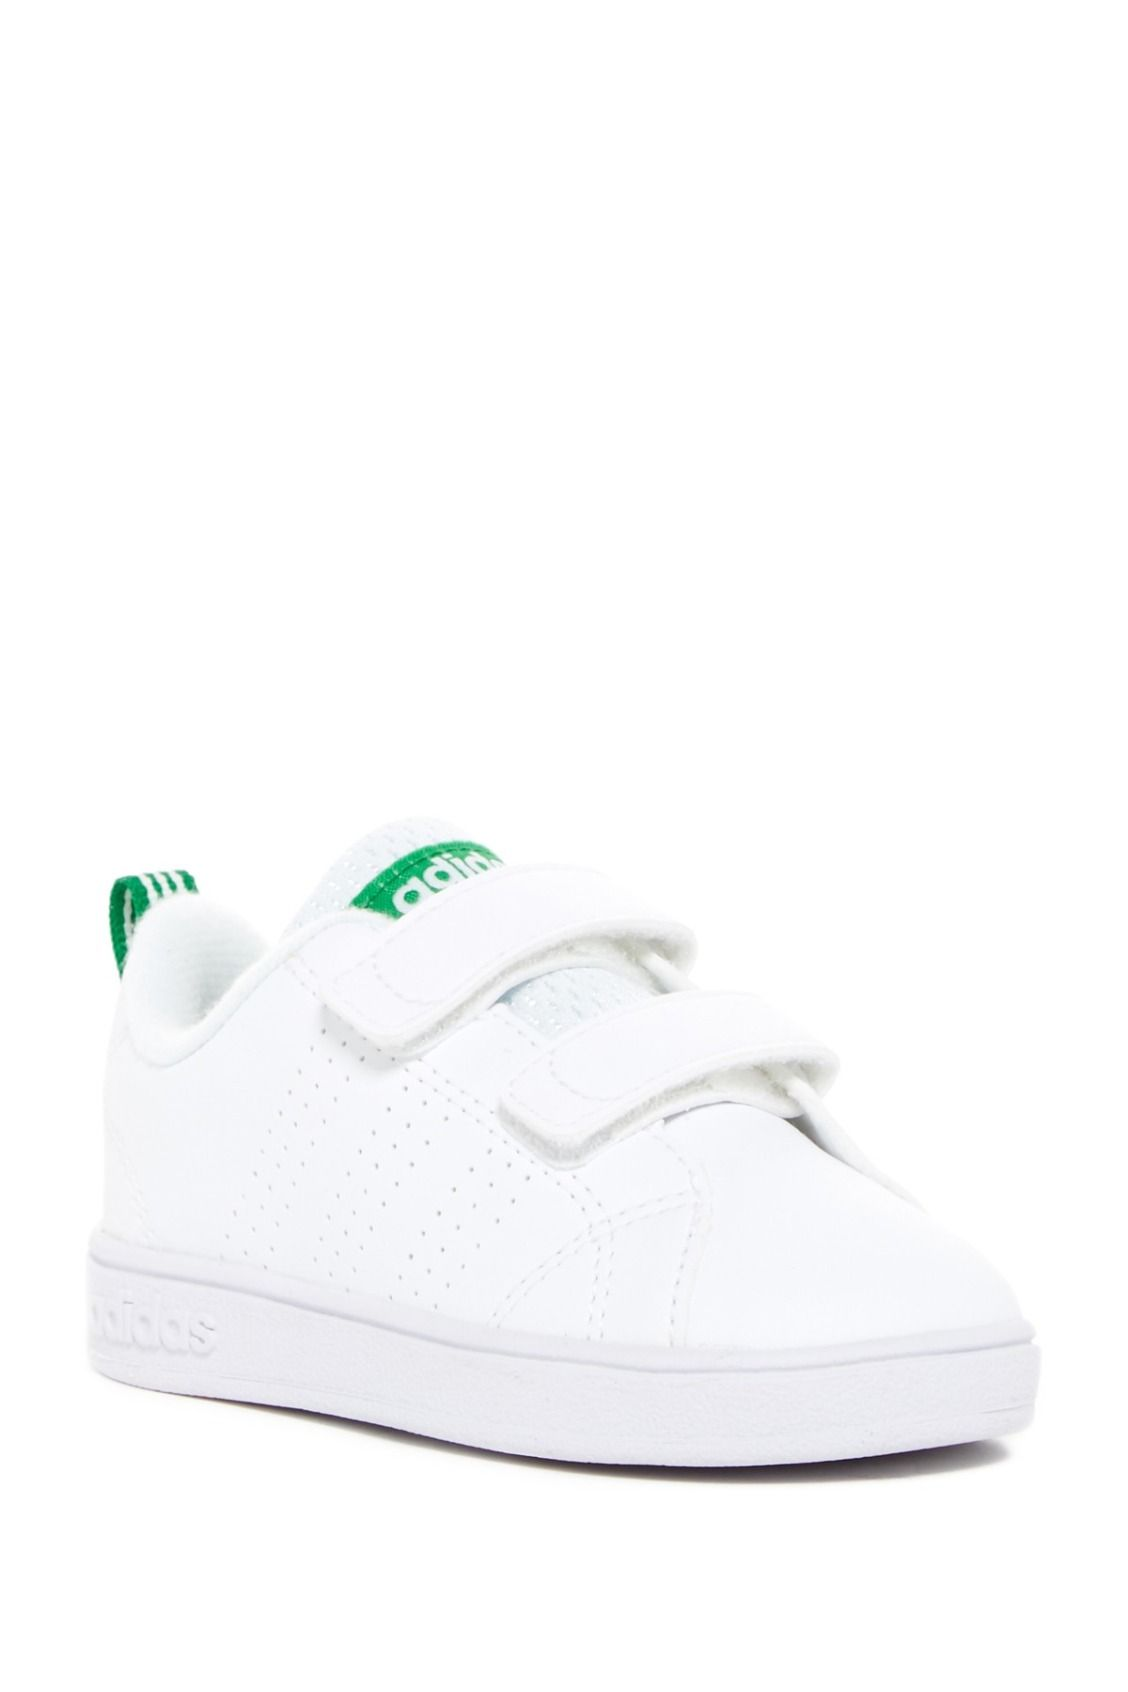 c8536e267fb Obsessed! adidas VS Advantage Clean Sneakers for baby | For the ...